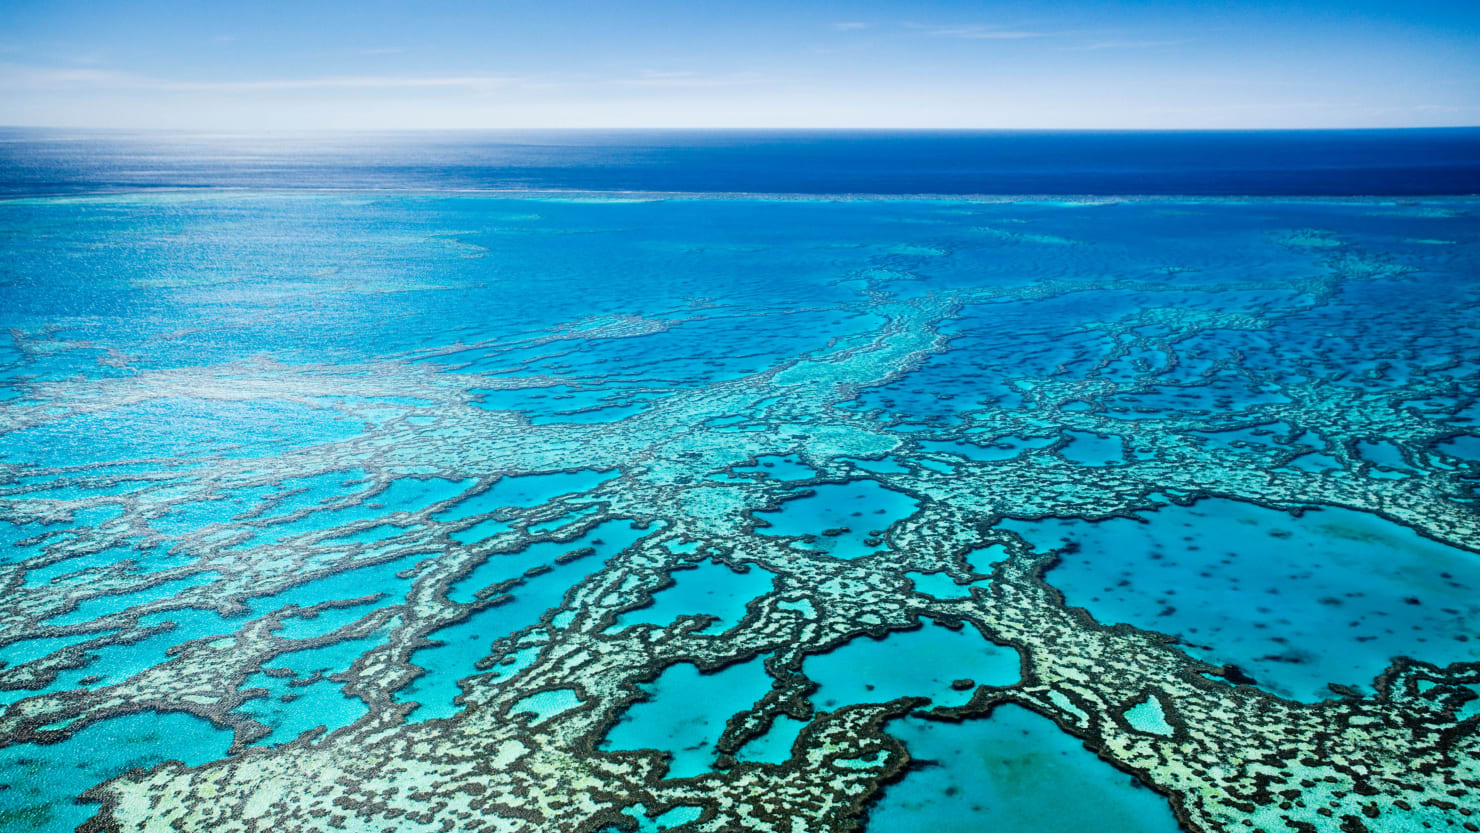 To Save the Great Barrier Reef, Move It